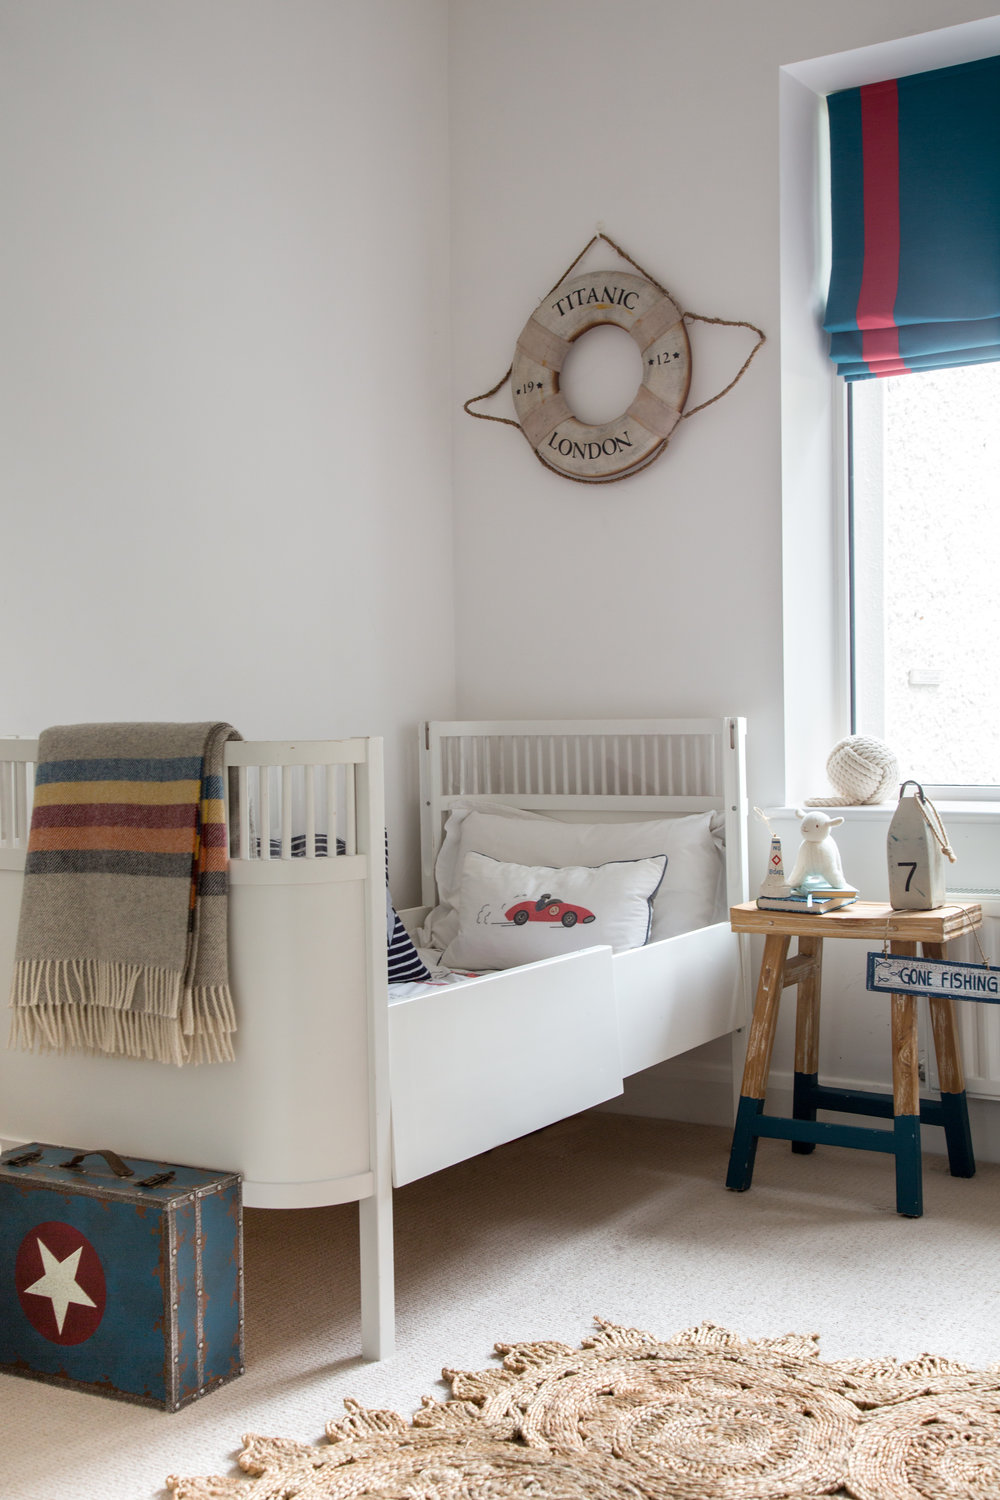 Lamb_Design_Paper_and_Moon_Emma_Lynch_Louise_Dockery_Scandi_French_Danish_homeware_Irish_business_interior_designer_boys_bedroom_jute_rug.jpg